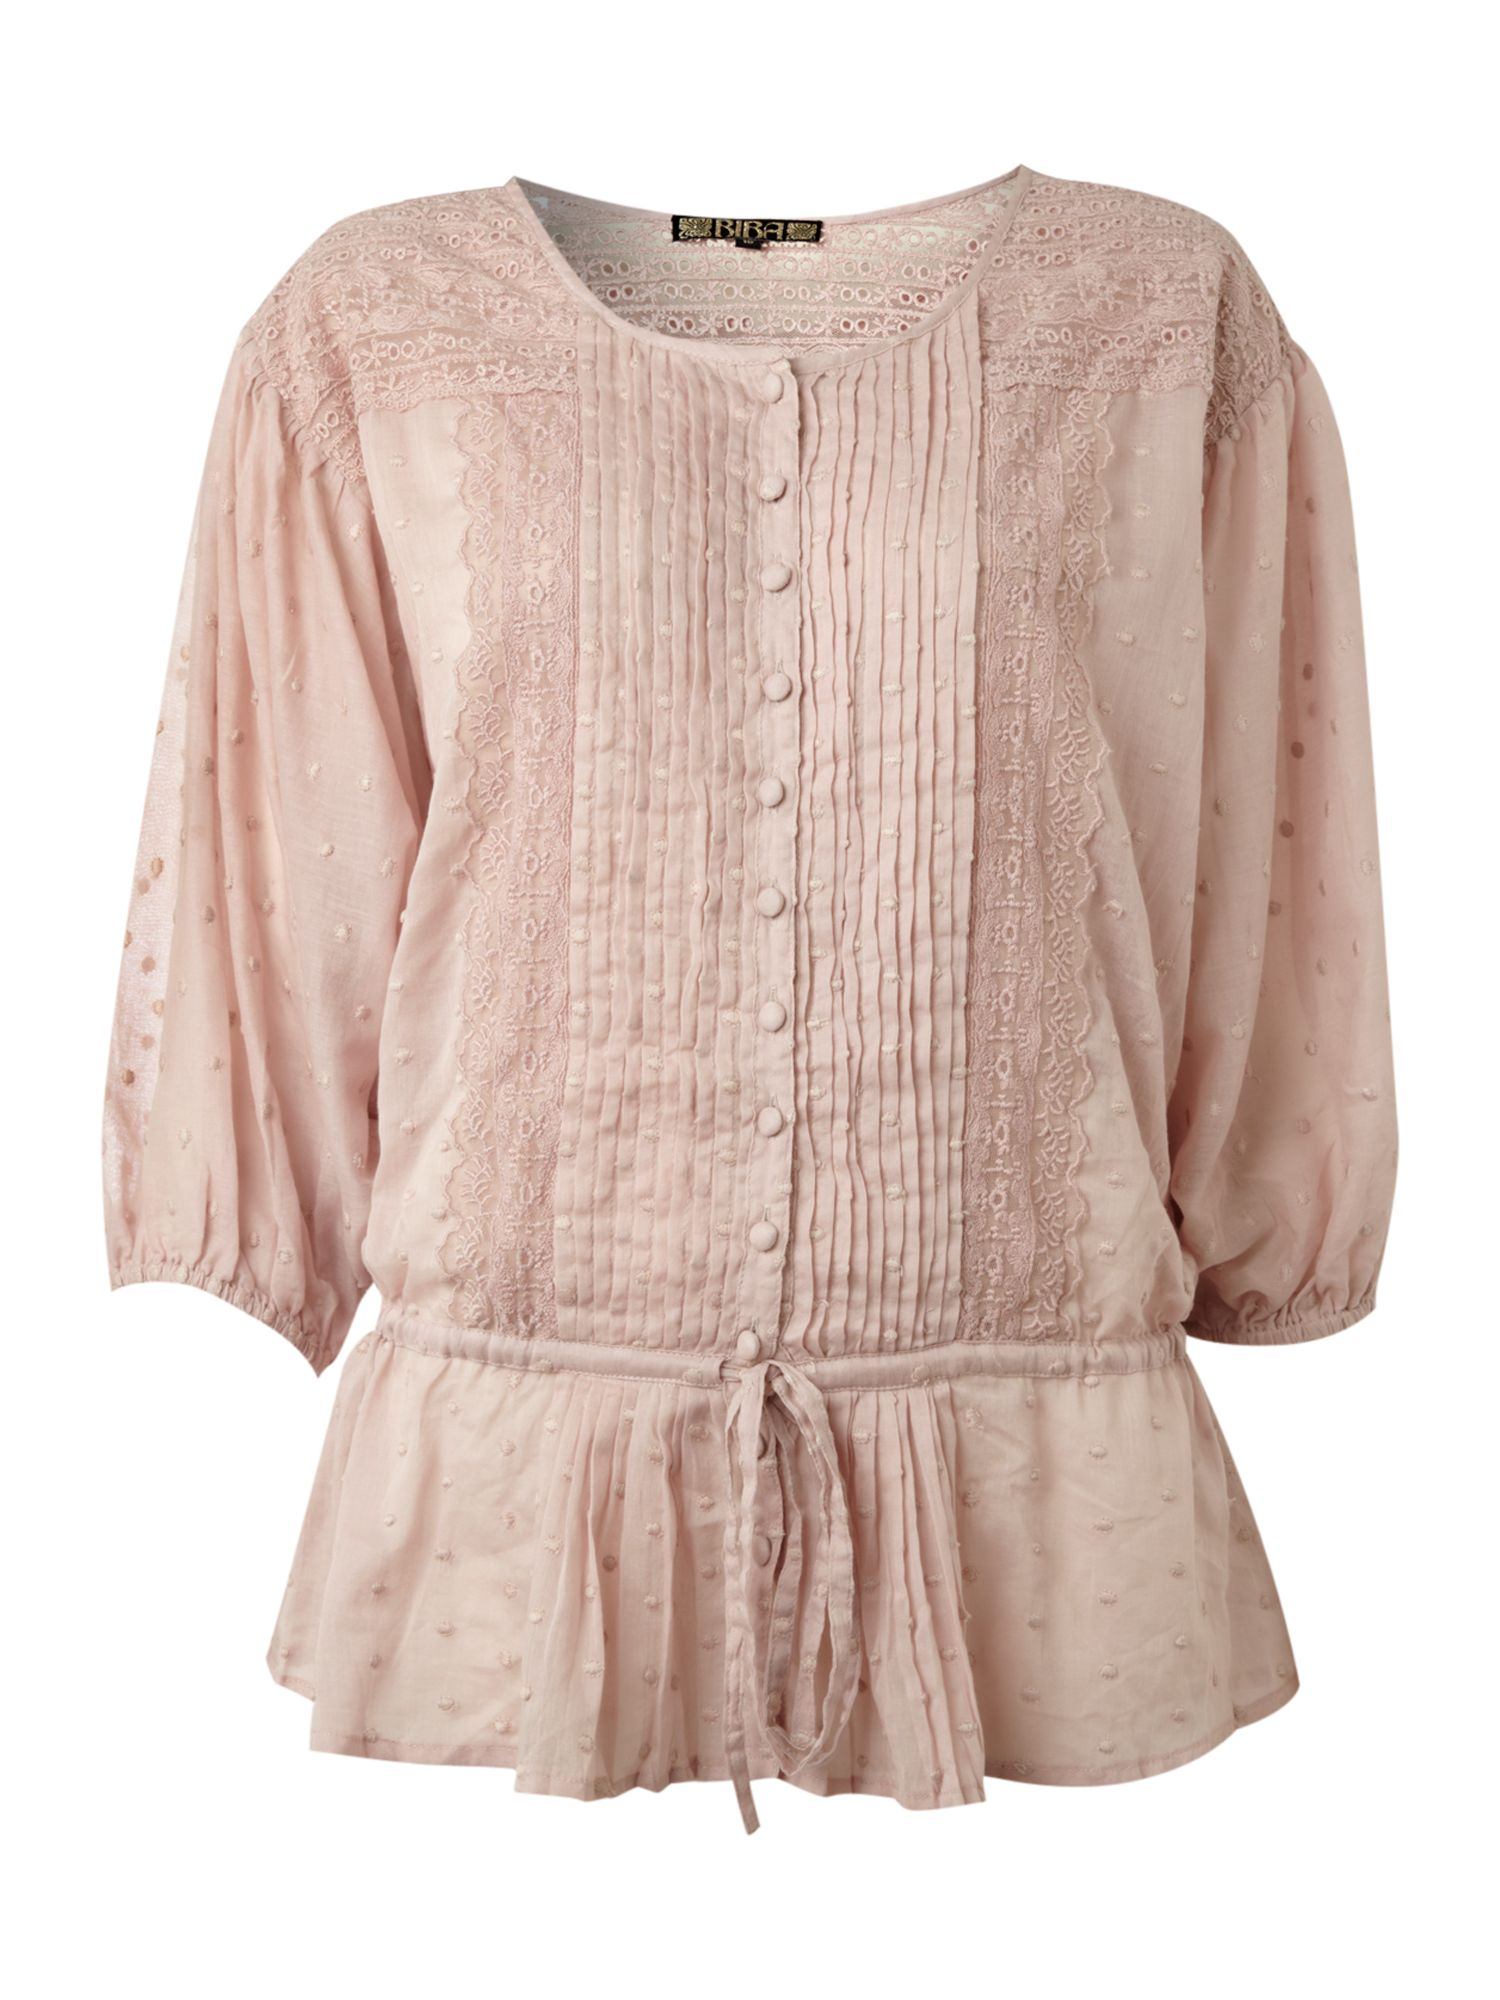 Womens Biba Lace and Broderie blouse, Pink